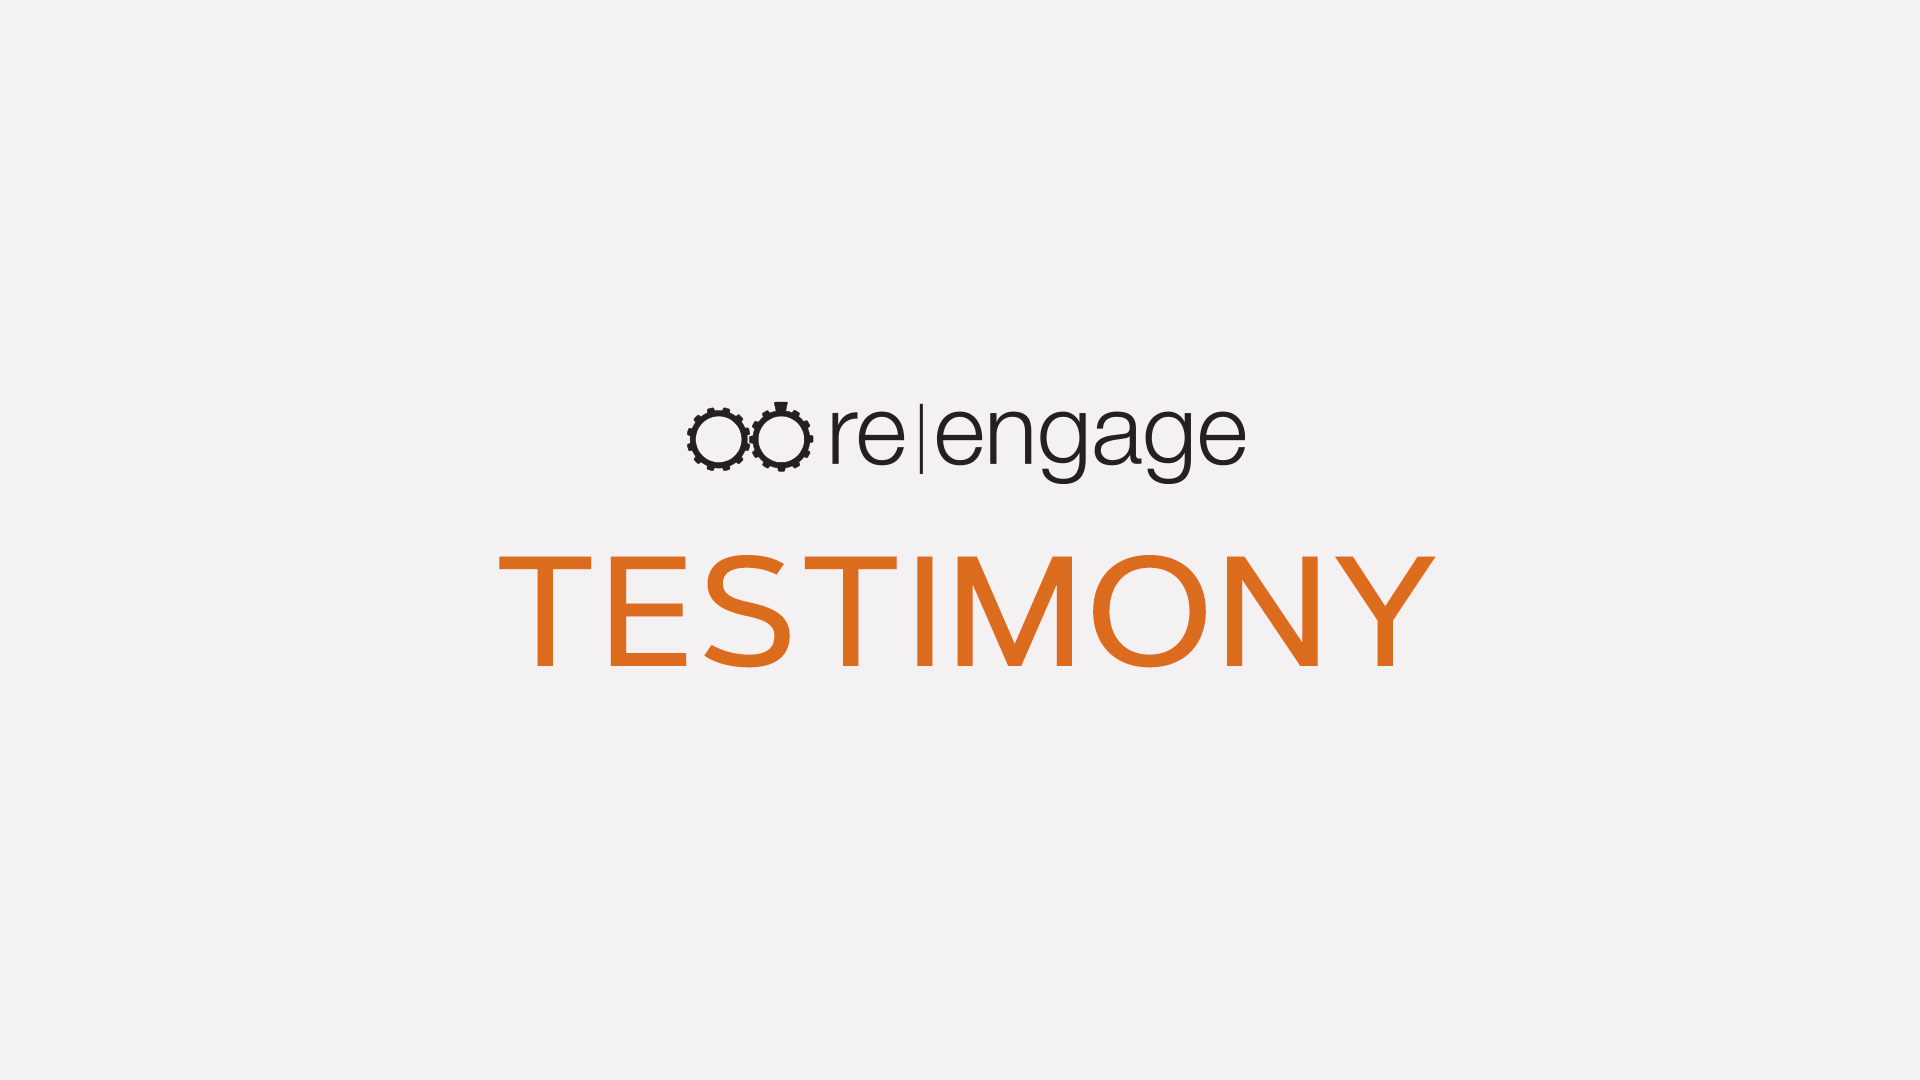 Joey and Christian Rider - re|engage Testimony